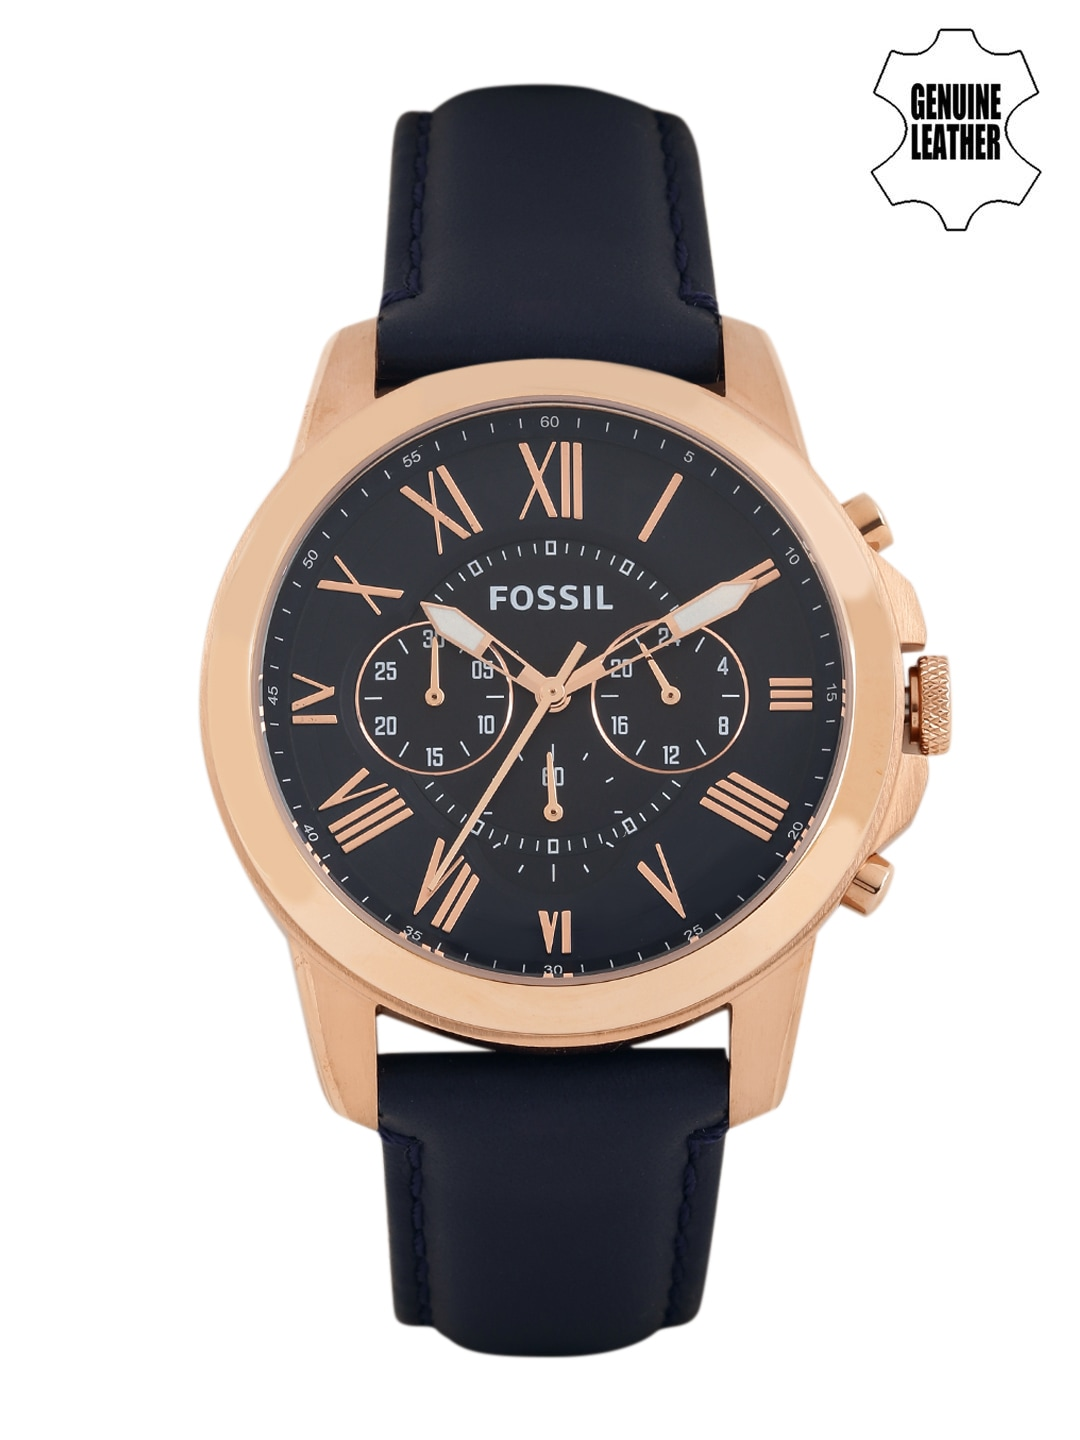 Fossil Men Navy Dial Chronograph Watch FS4835